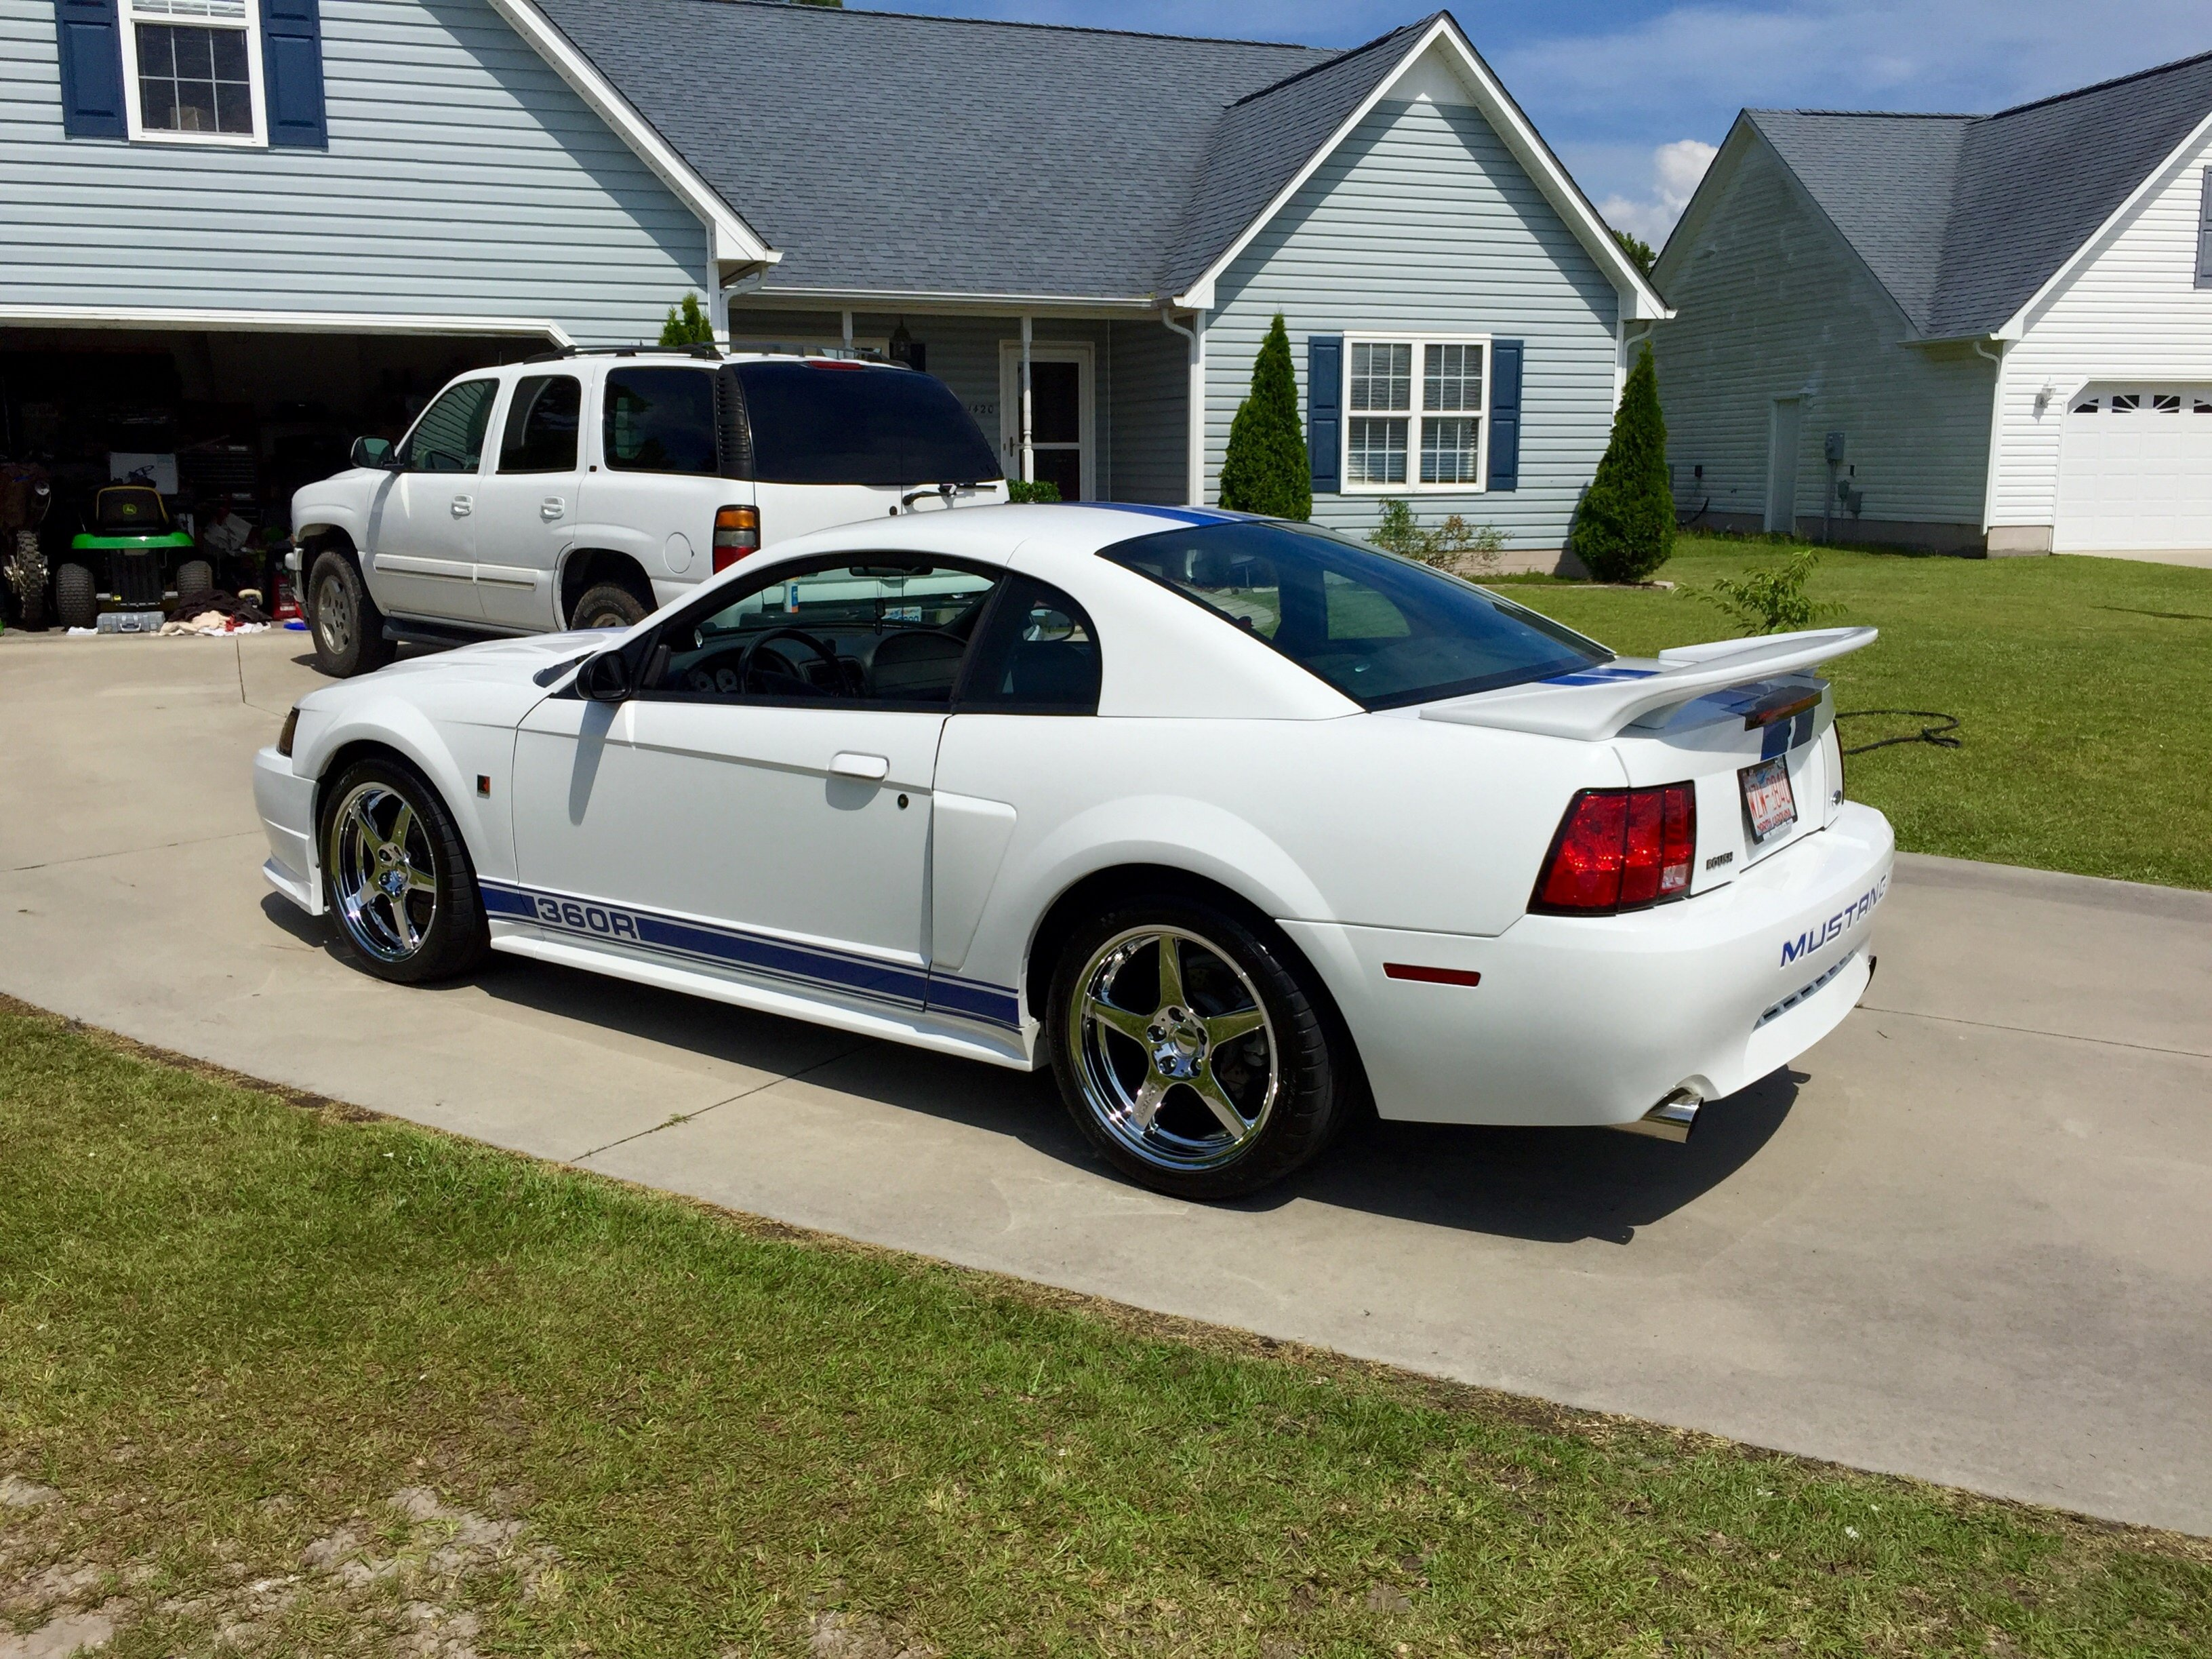 Click image for larger version  Name:Mustang 2.jpg Views:108 Size:1.51 MB ID:205822